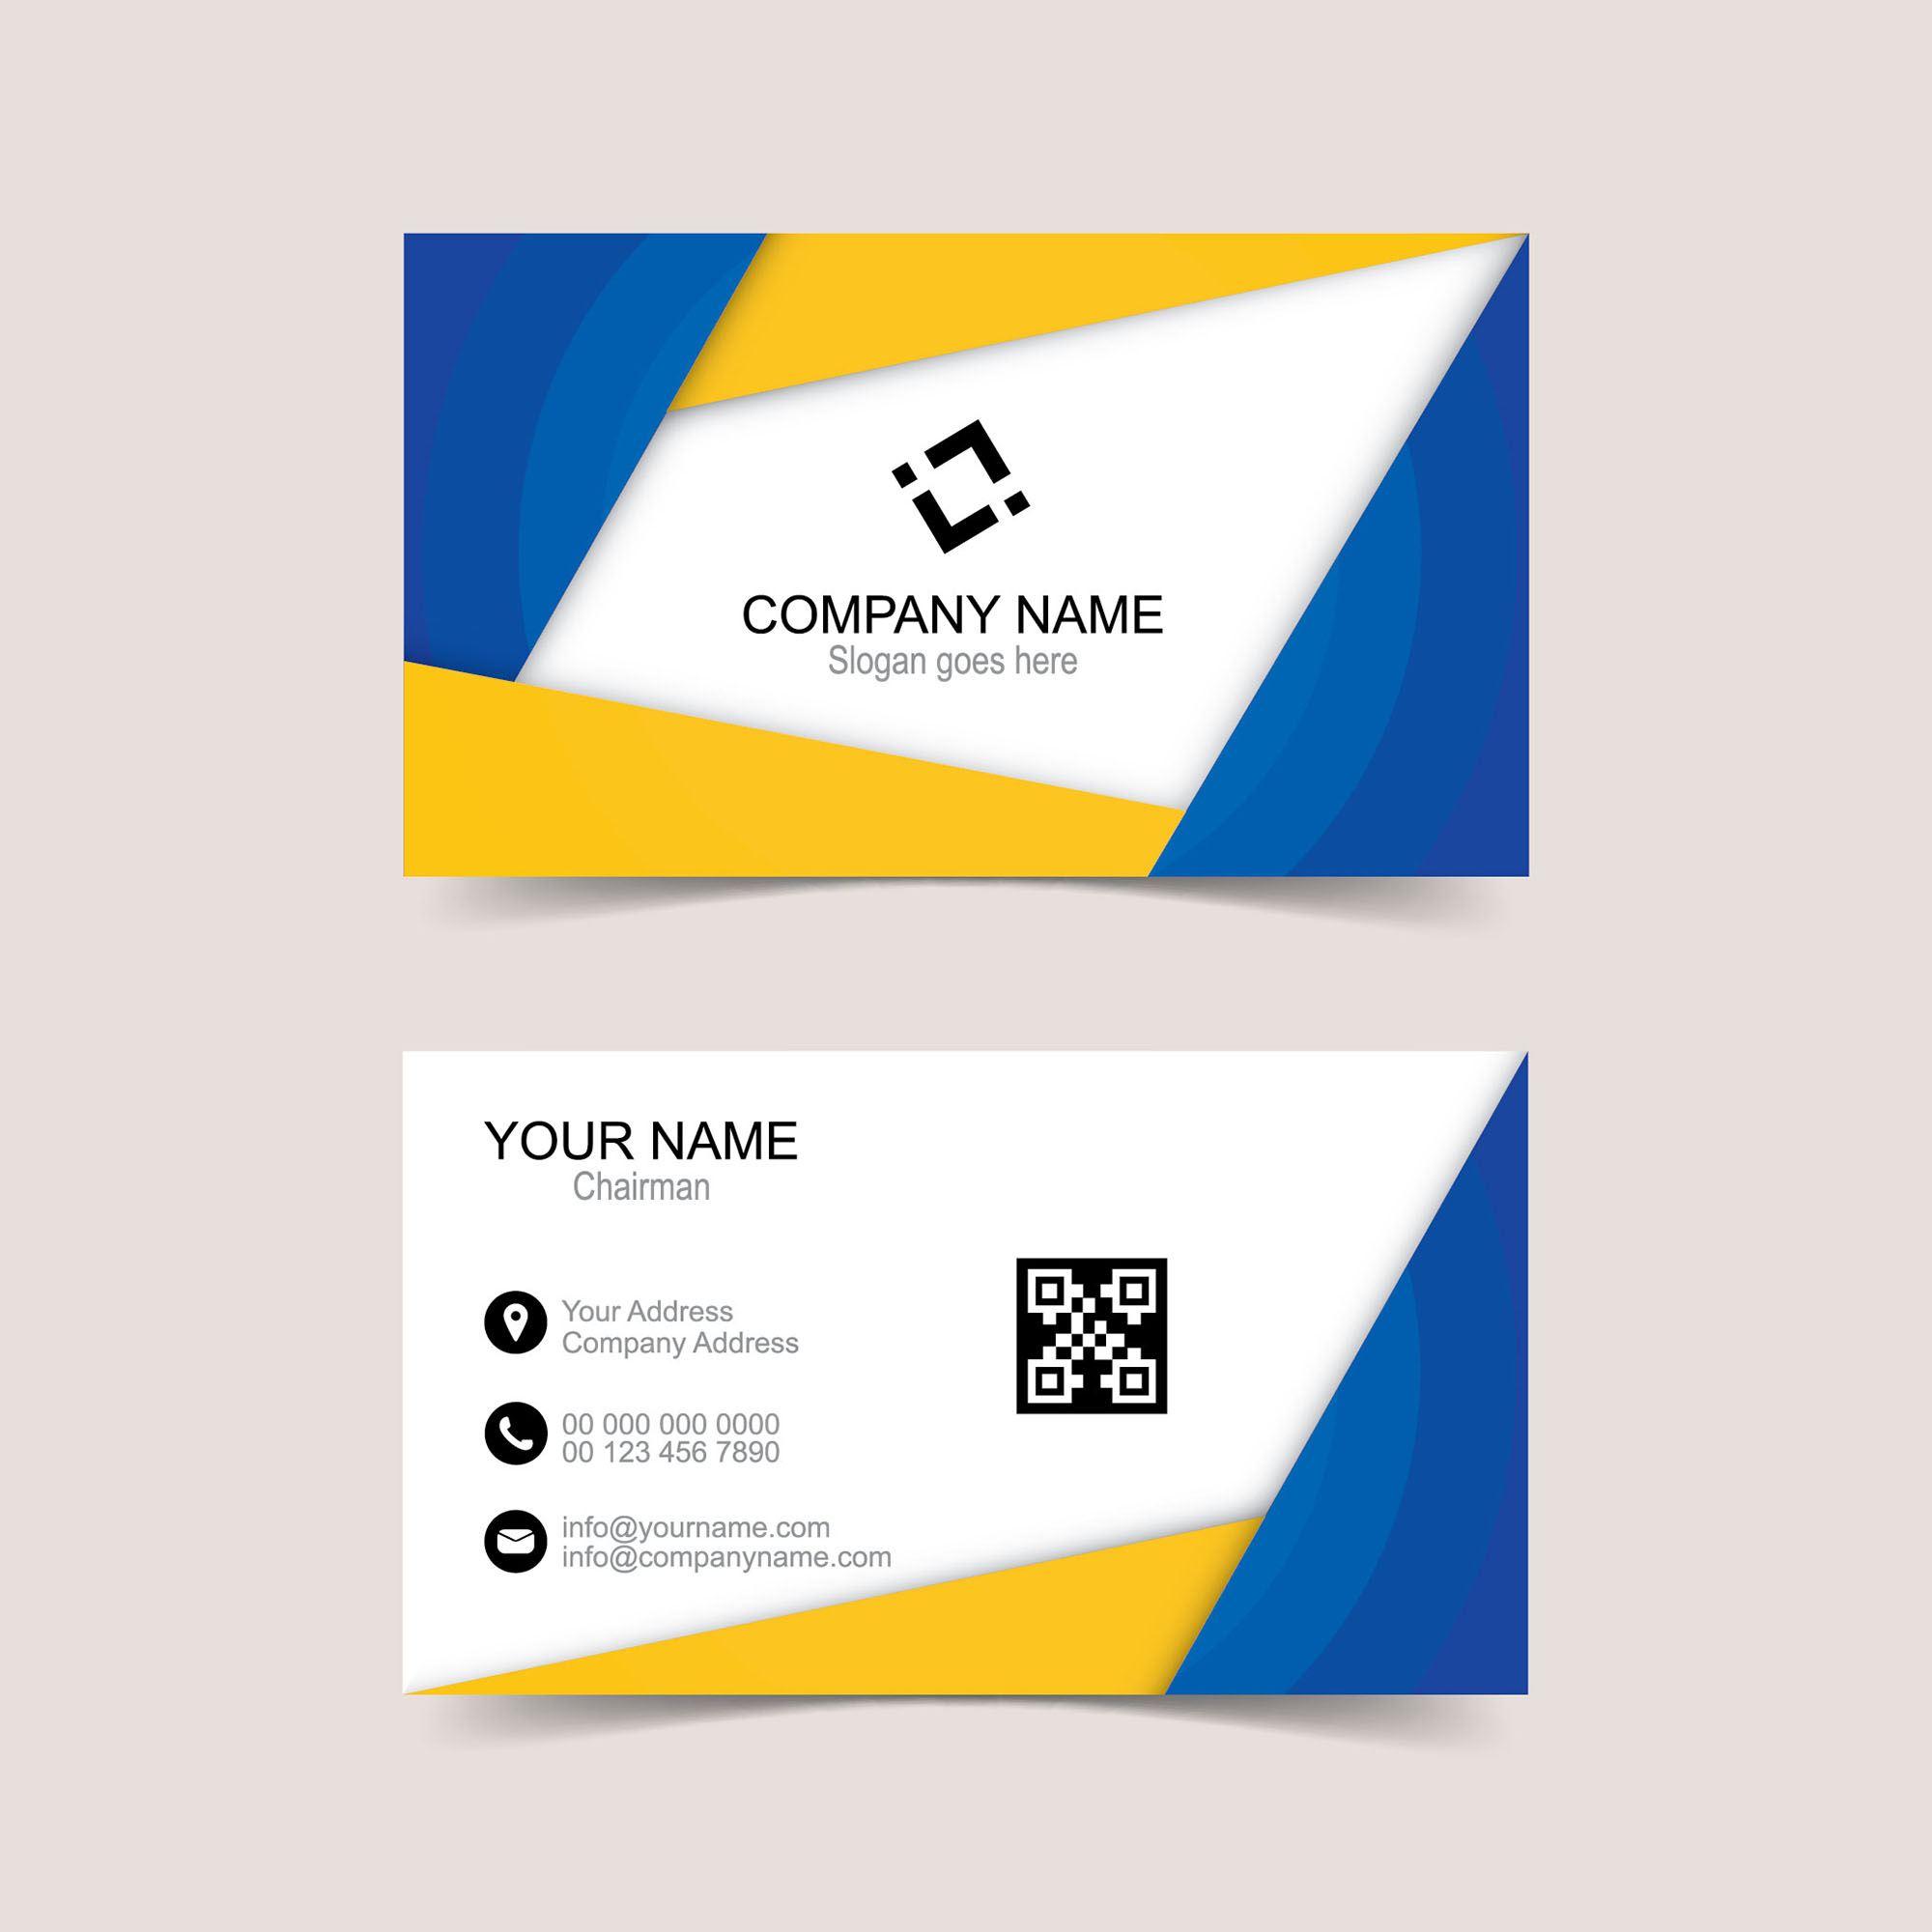 Vector creative business card template free download wisxi business card business cards business card design business card template design templates fbccfo Images